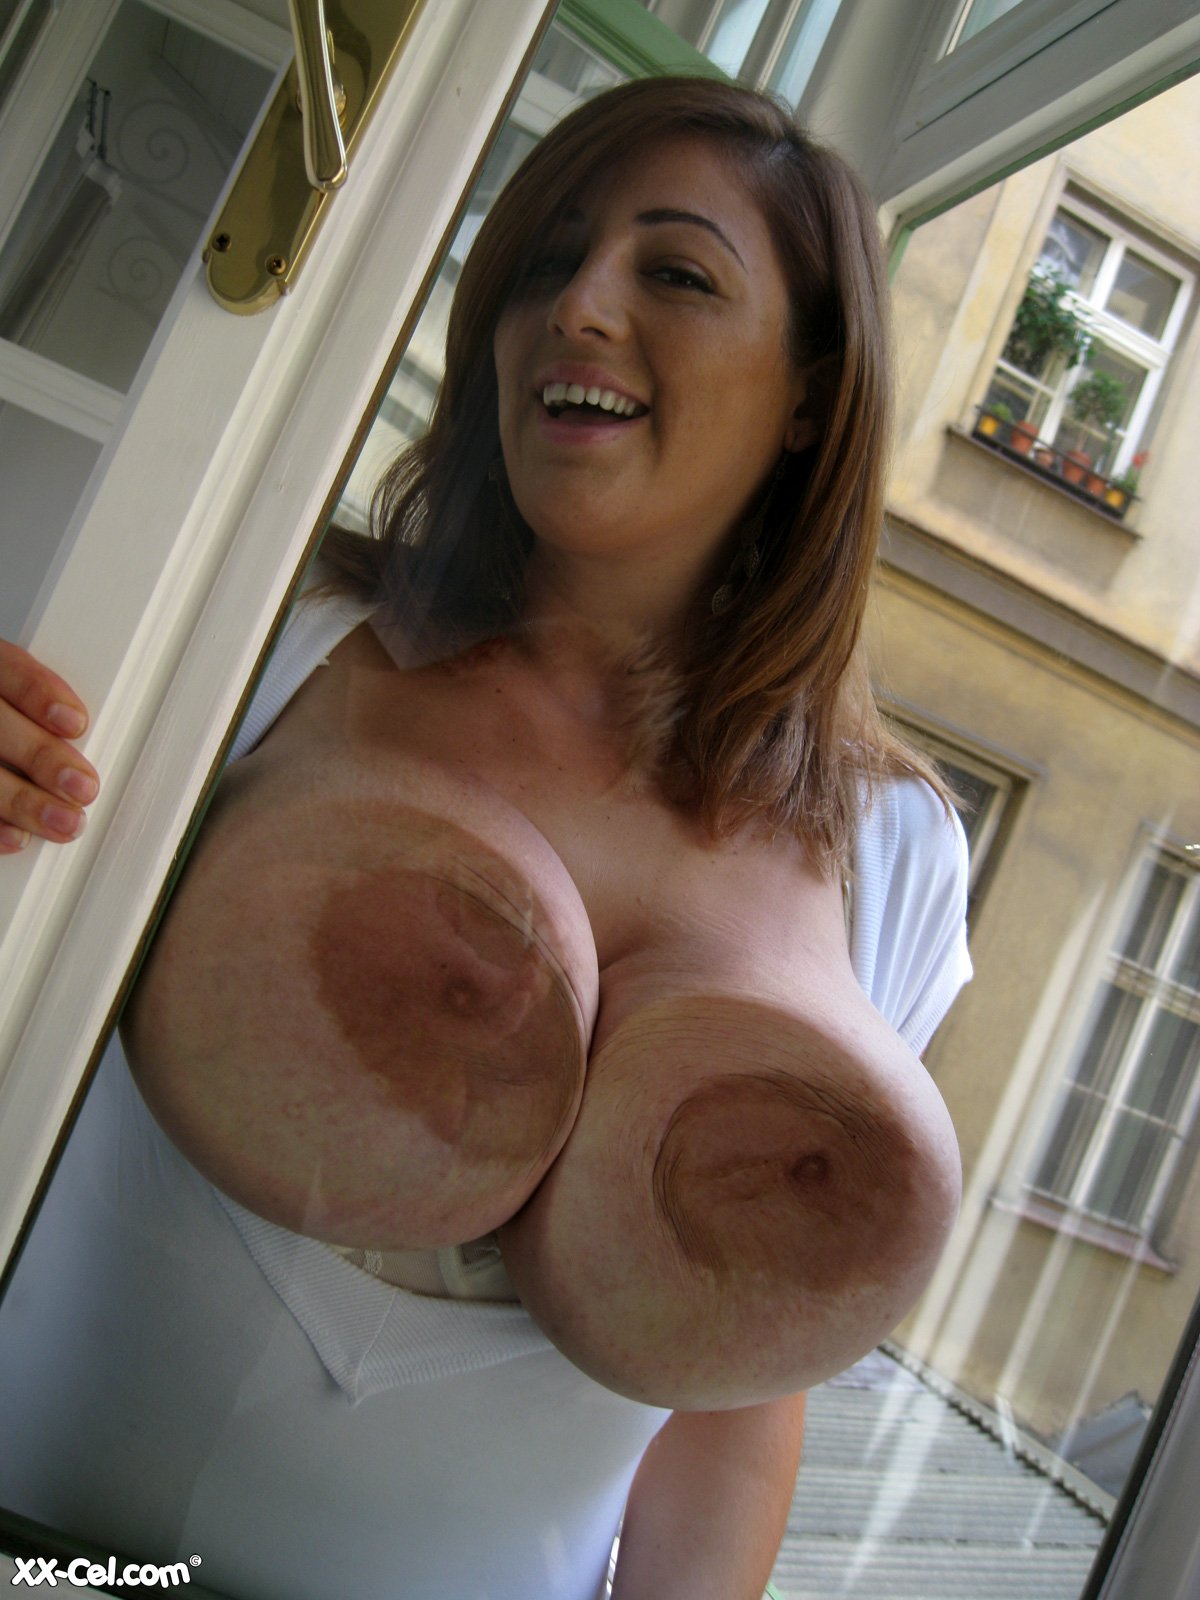 Photos Huge Areola Nipples >> Bollingerpr.com >> High-only ...